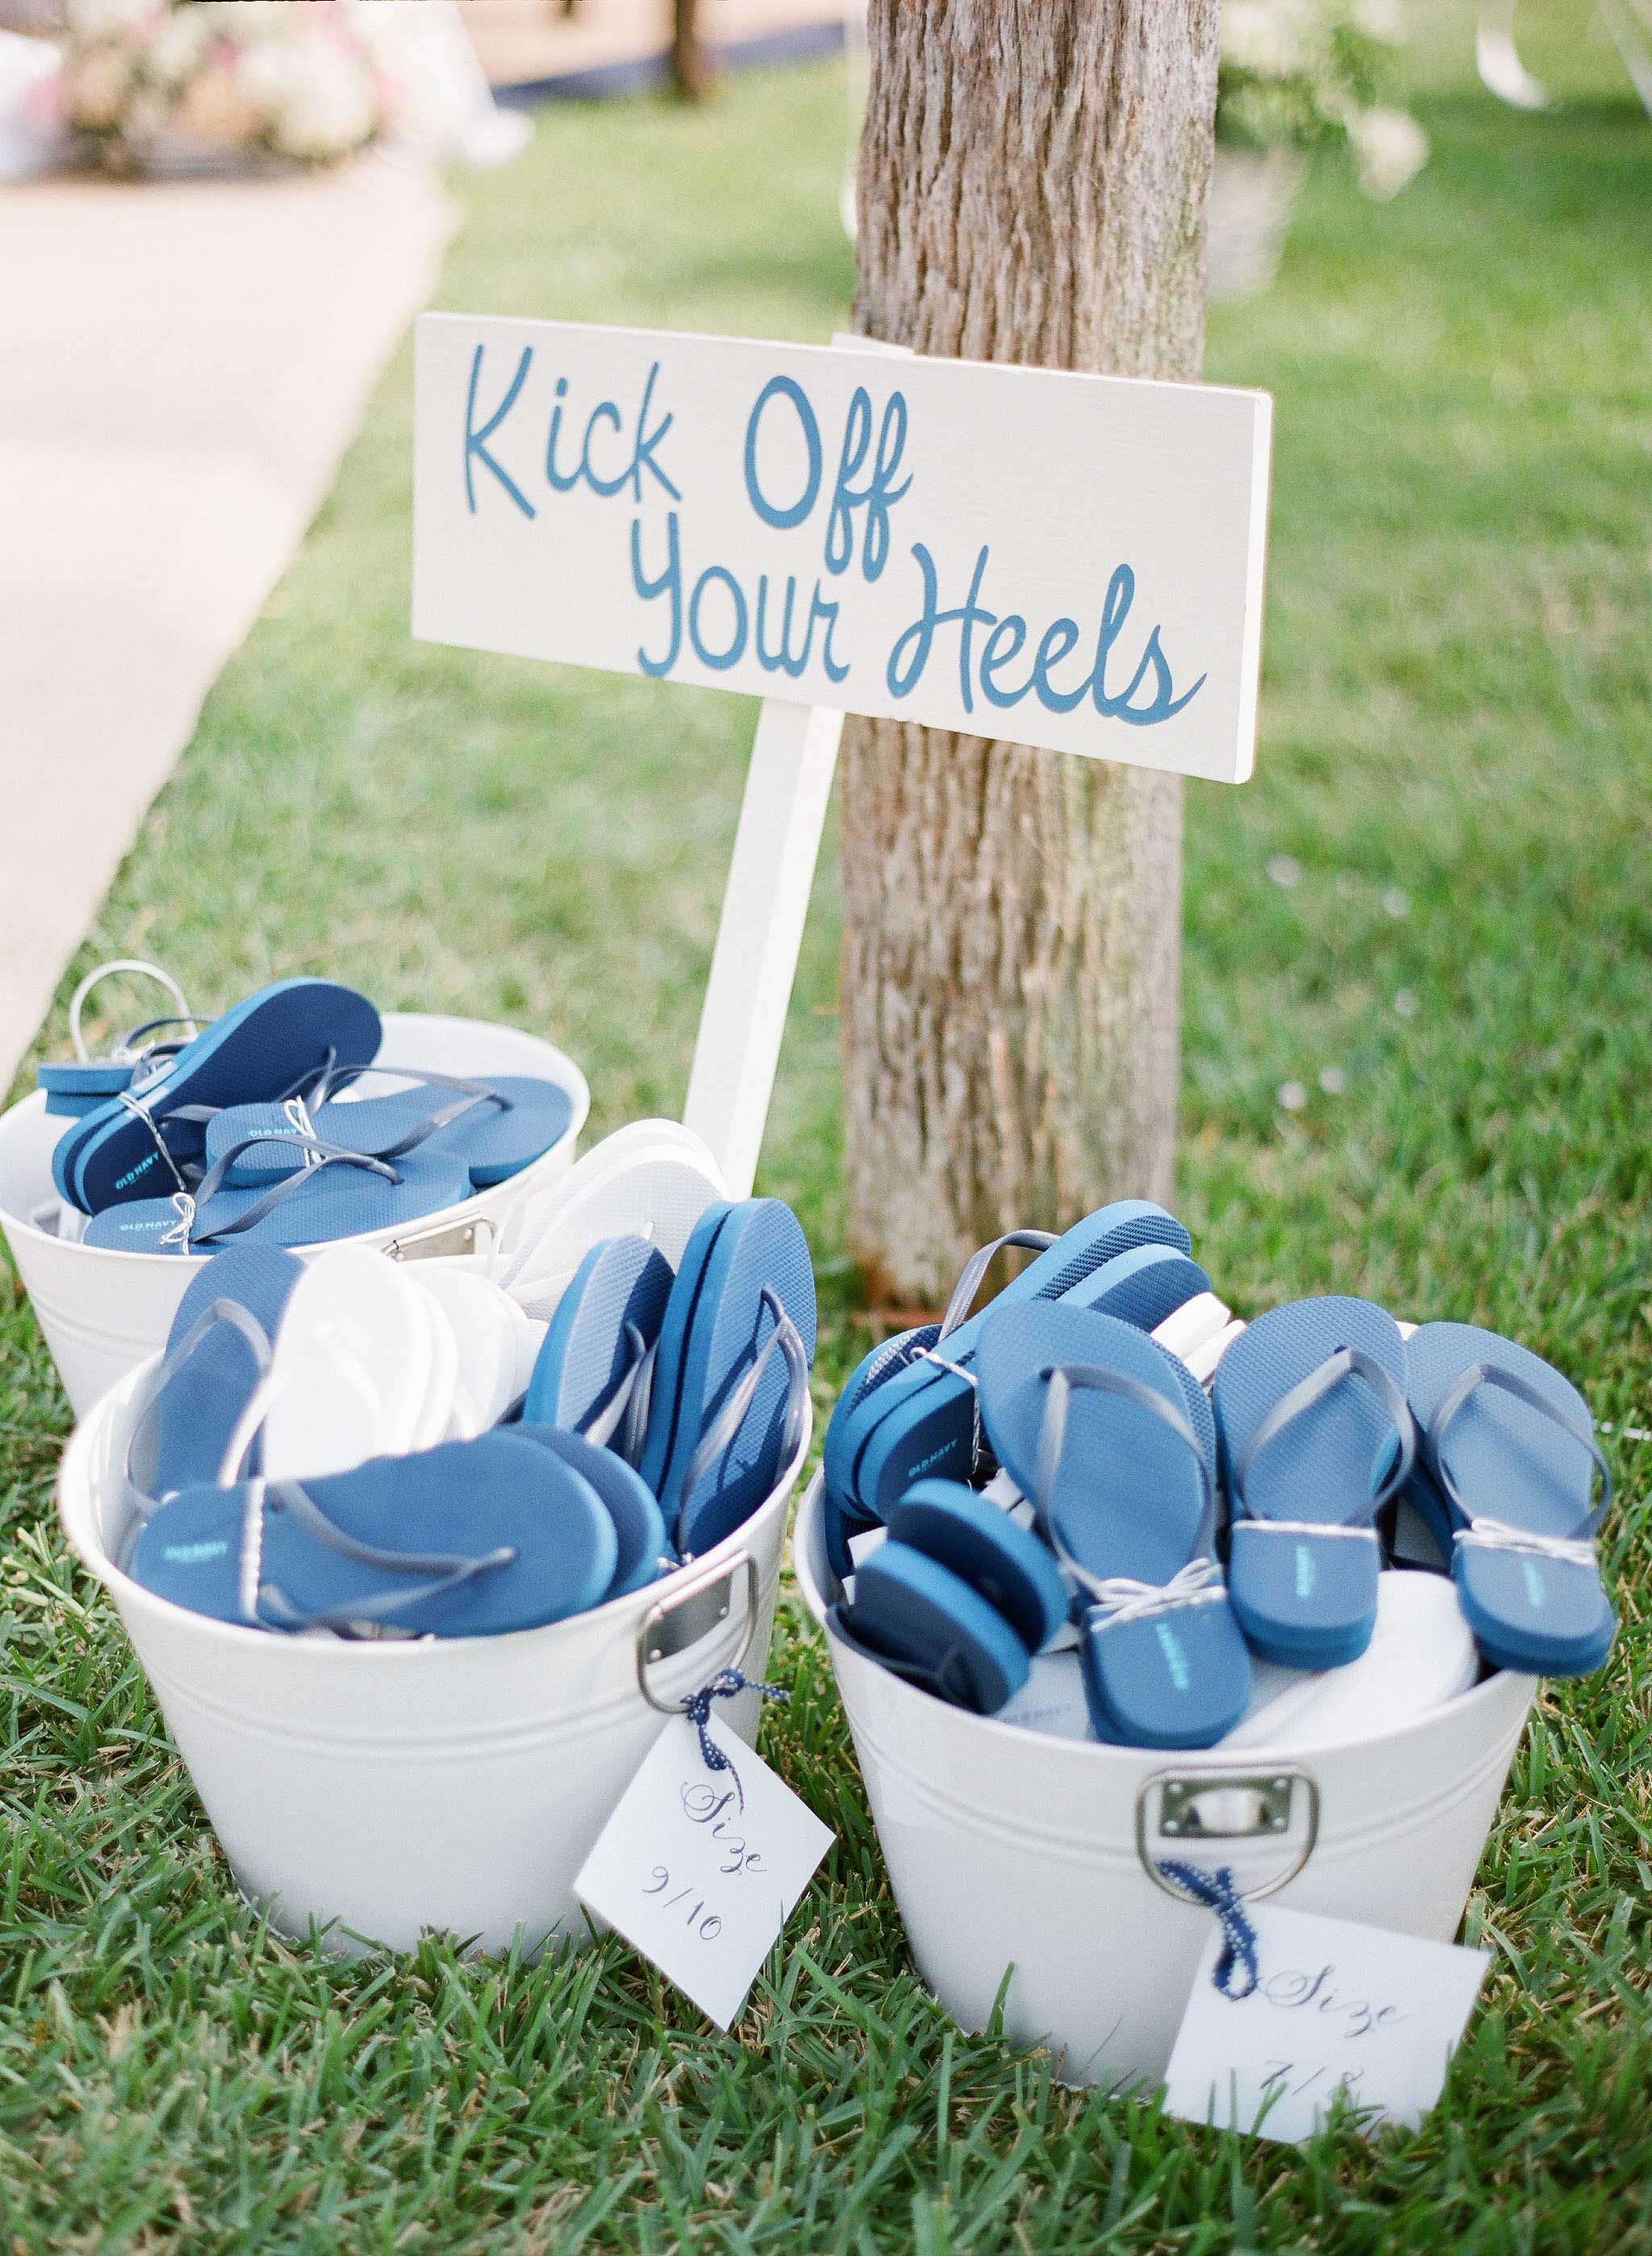 25 Casual Wedding Ideas for Your Low-Key Big Day